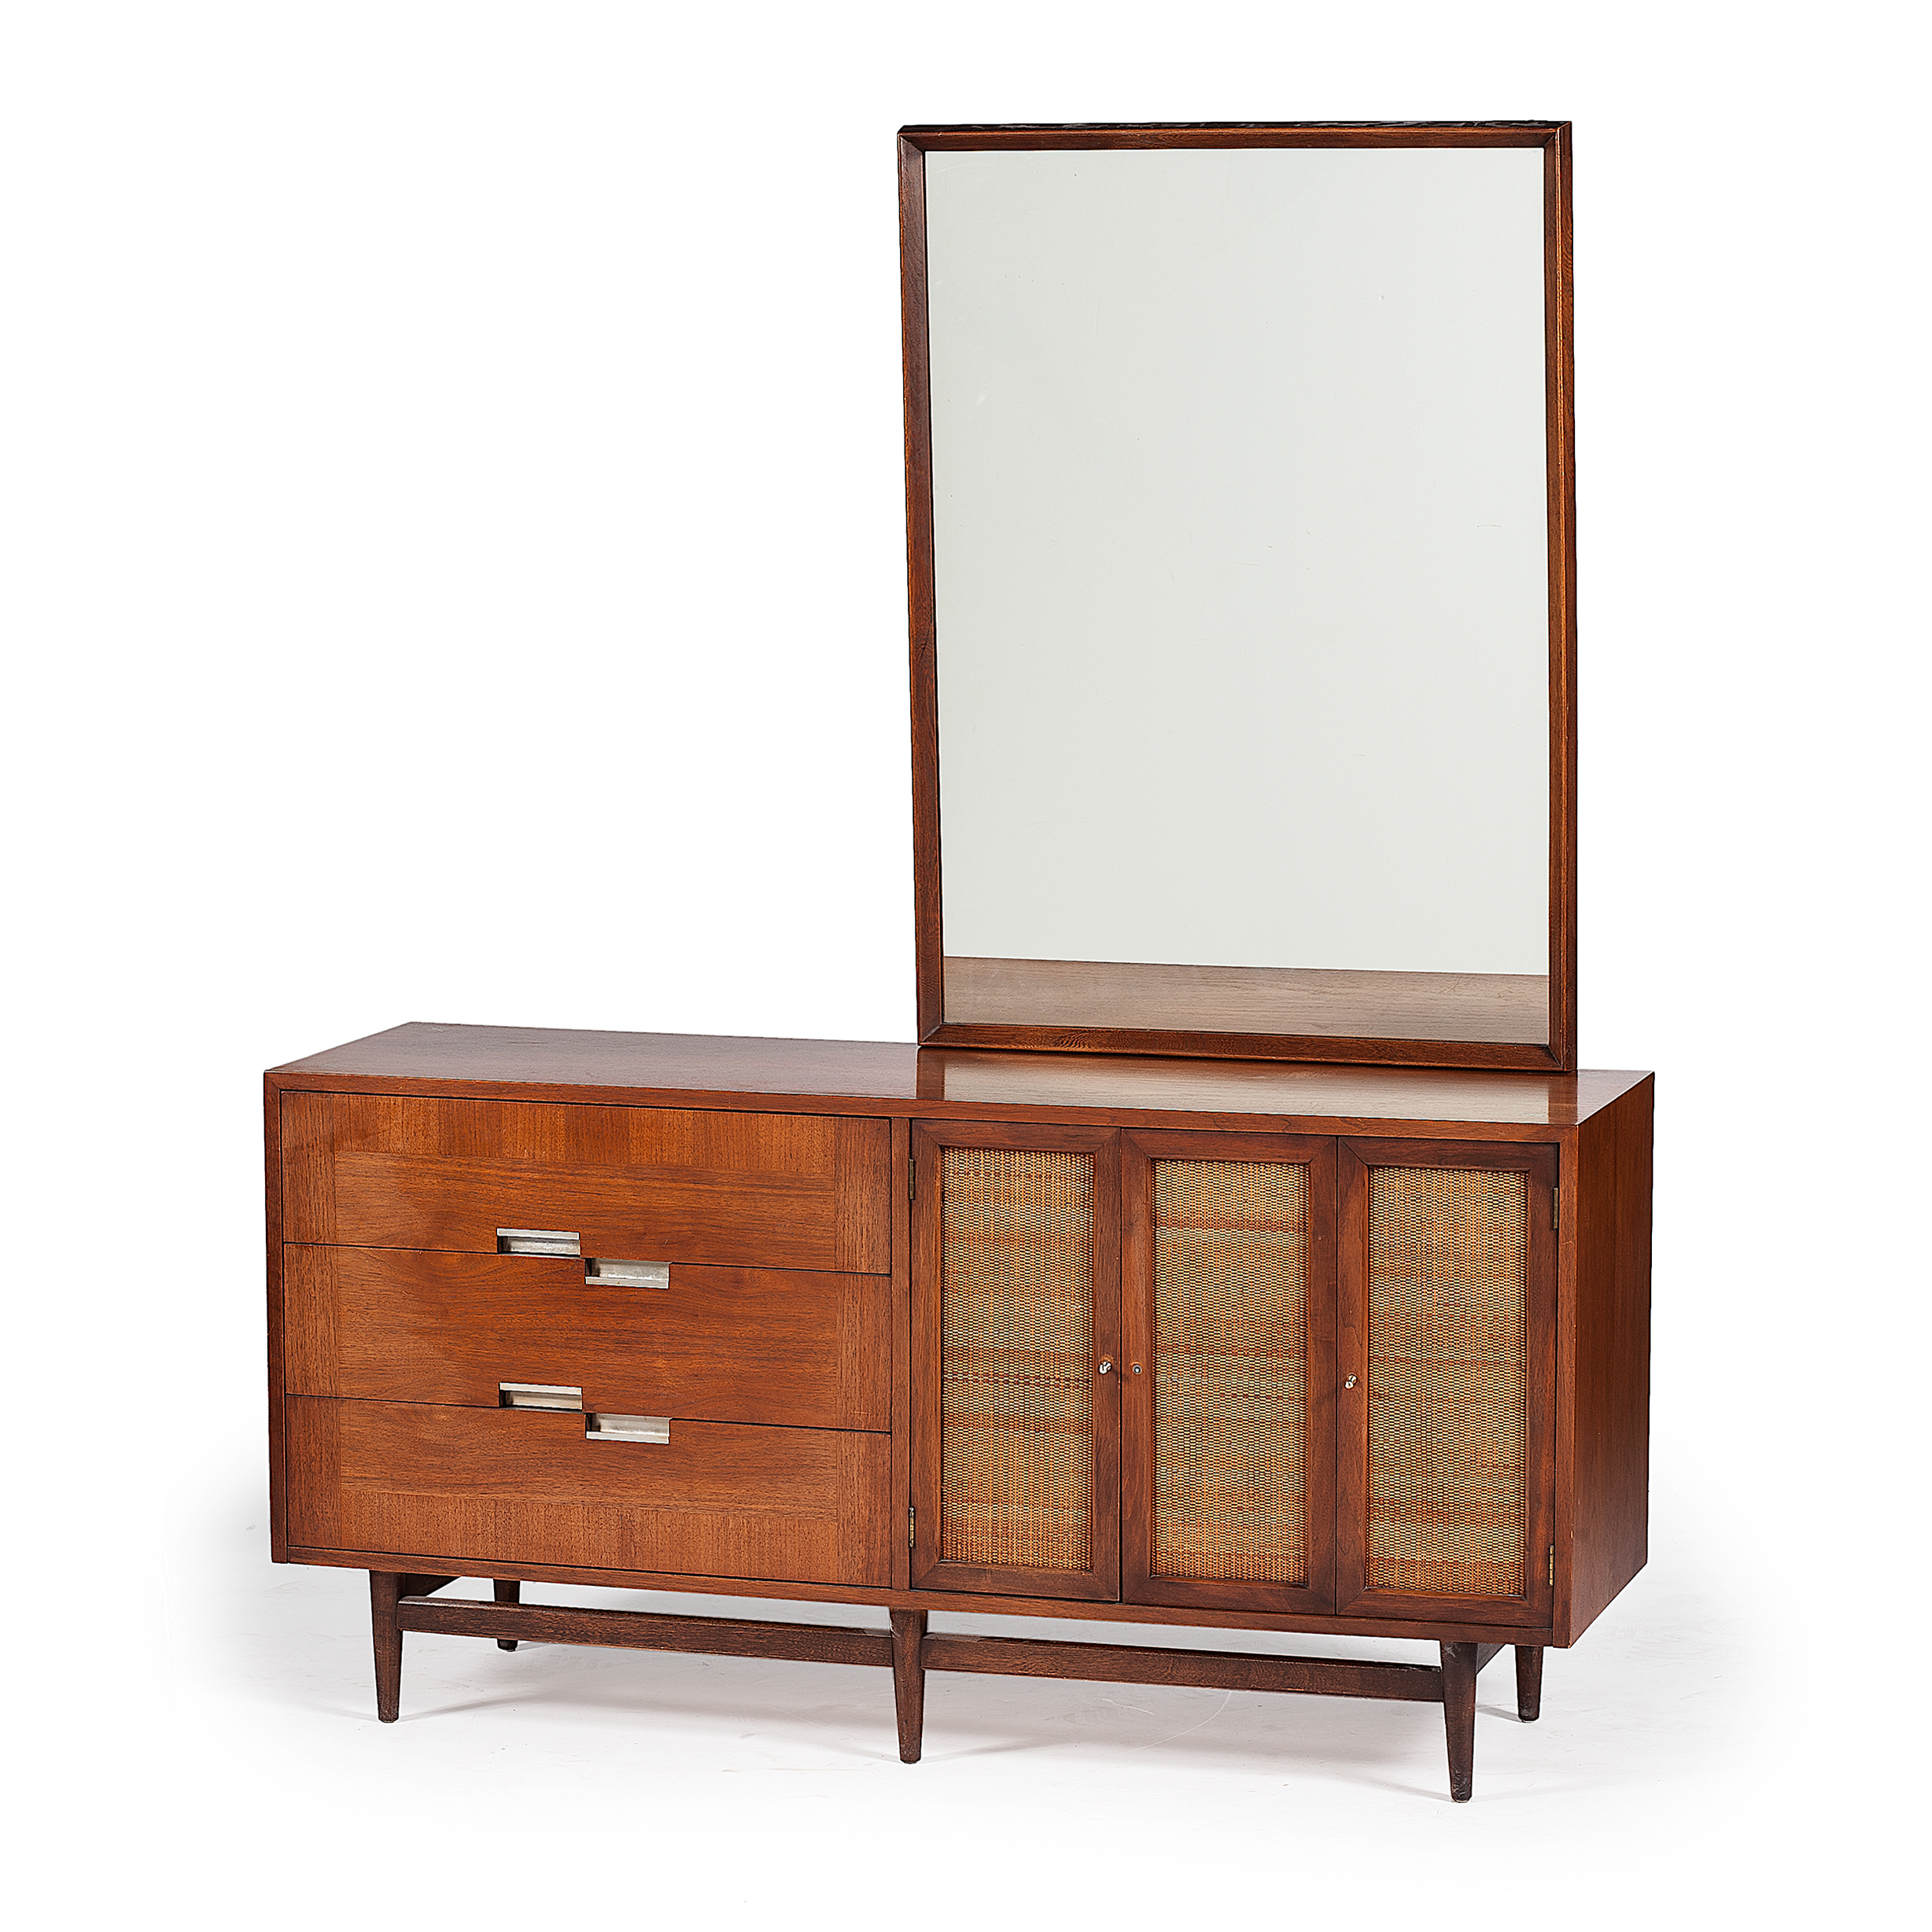 american of martinsville mid century modern dresser with mirror cowan 39 s auction house the. Black Bedroom Furniture Sets. Home Design Ideas